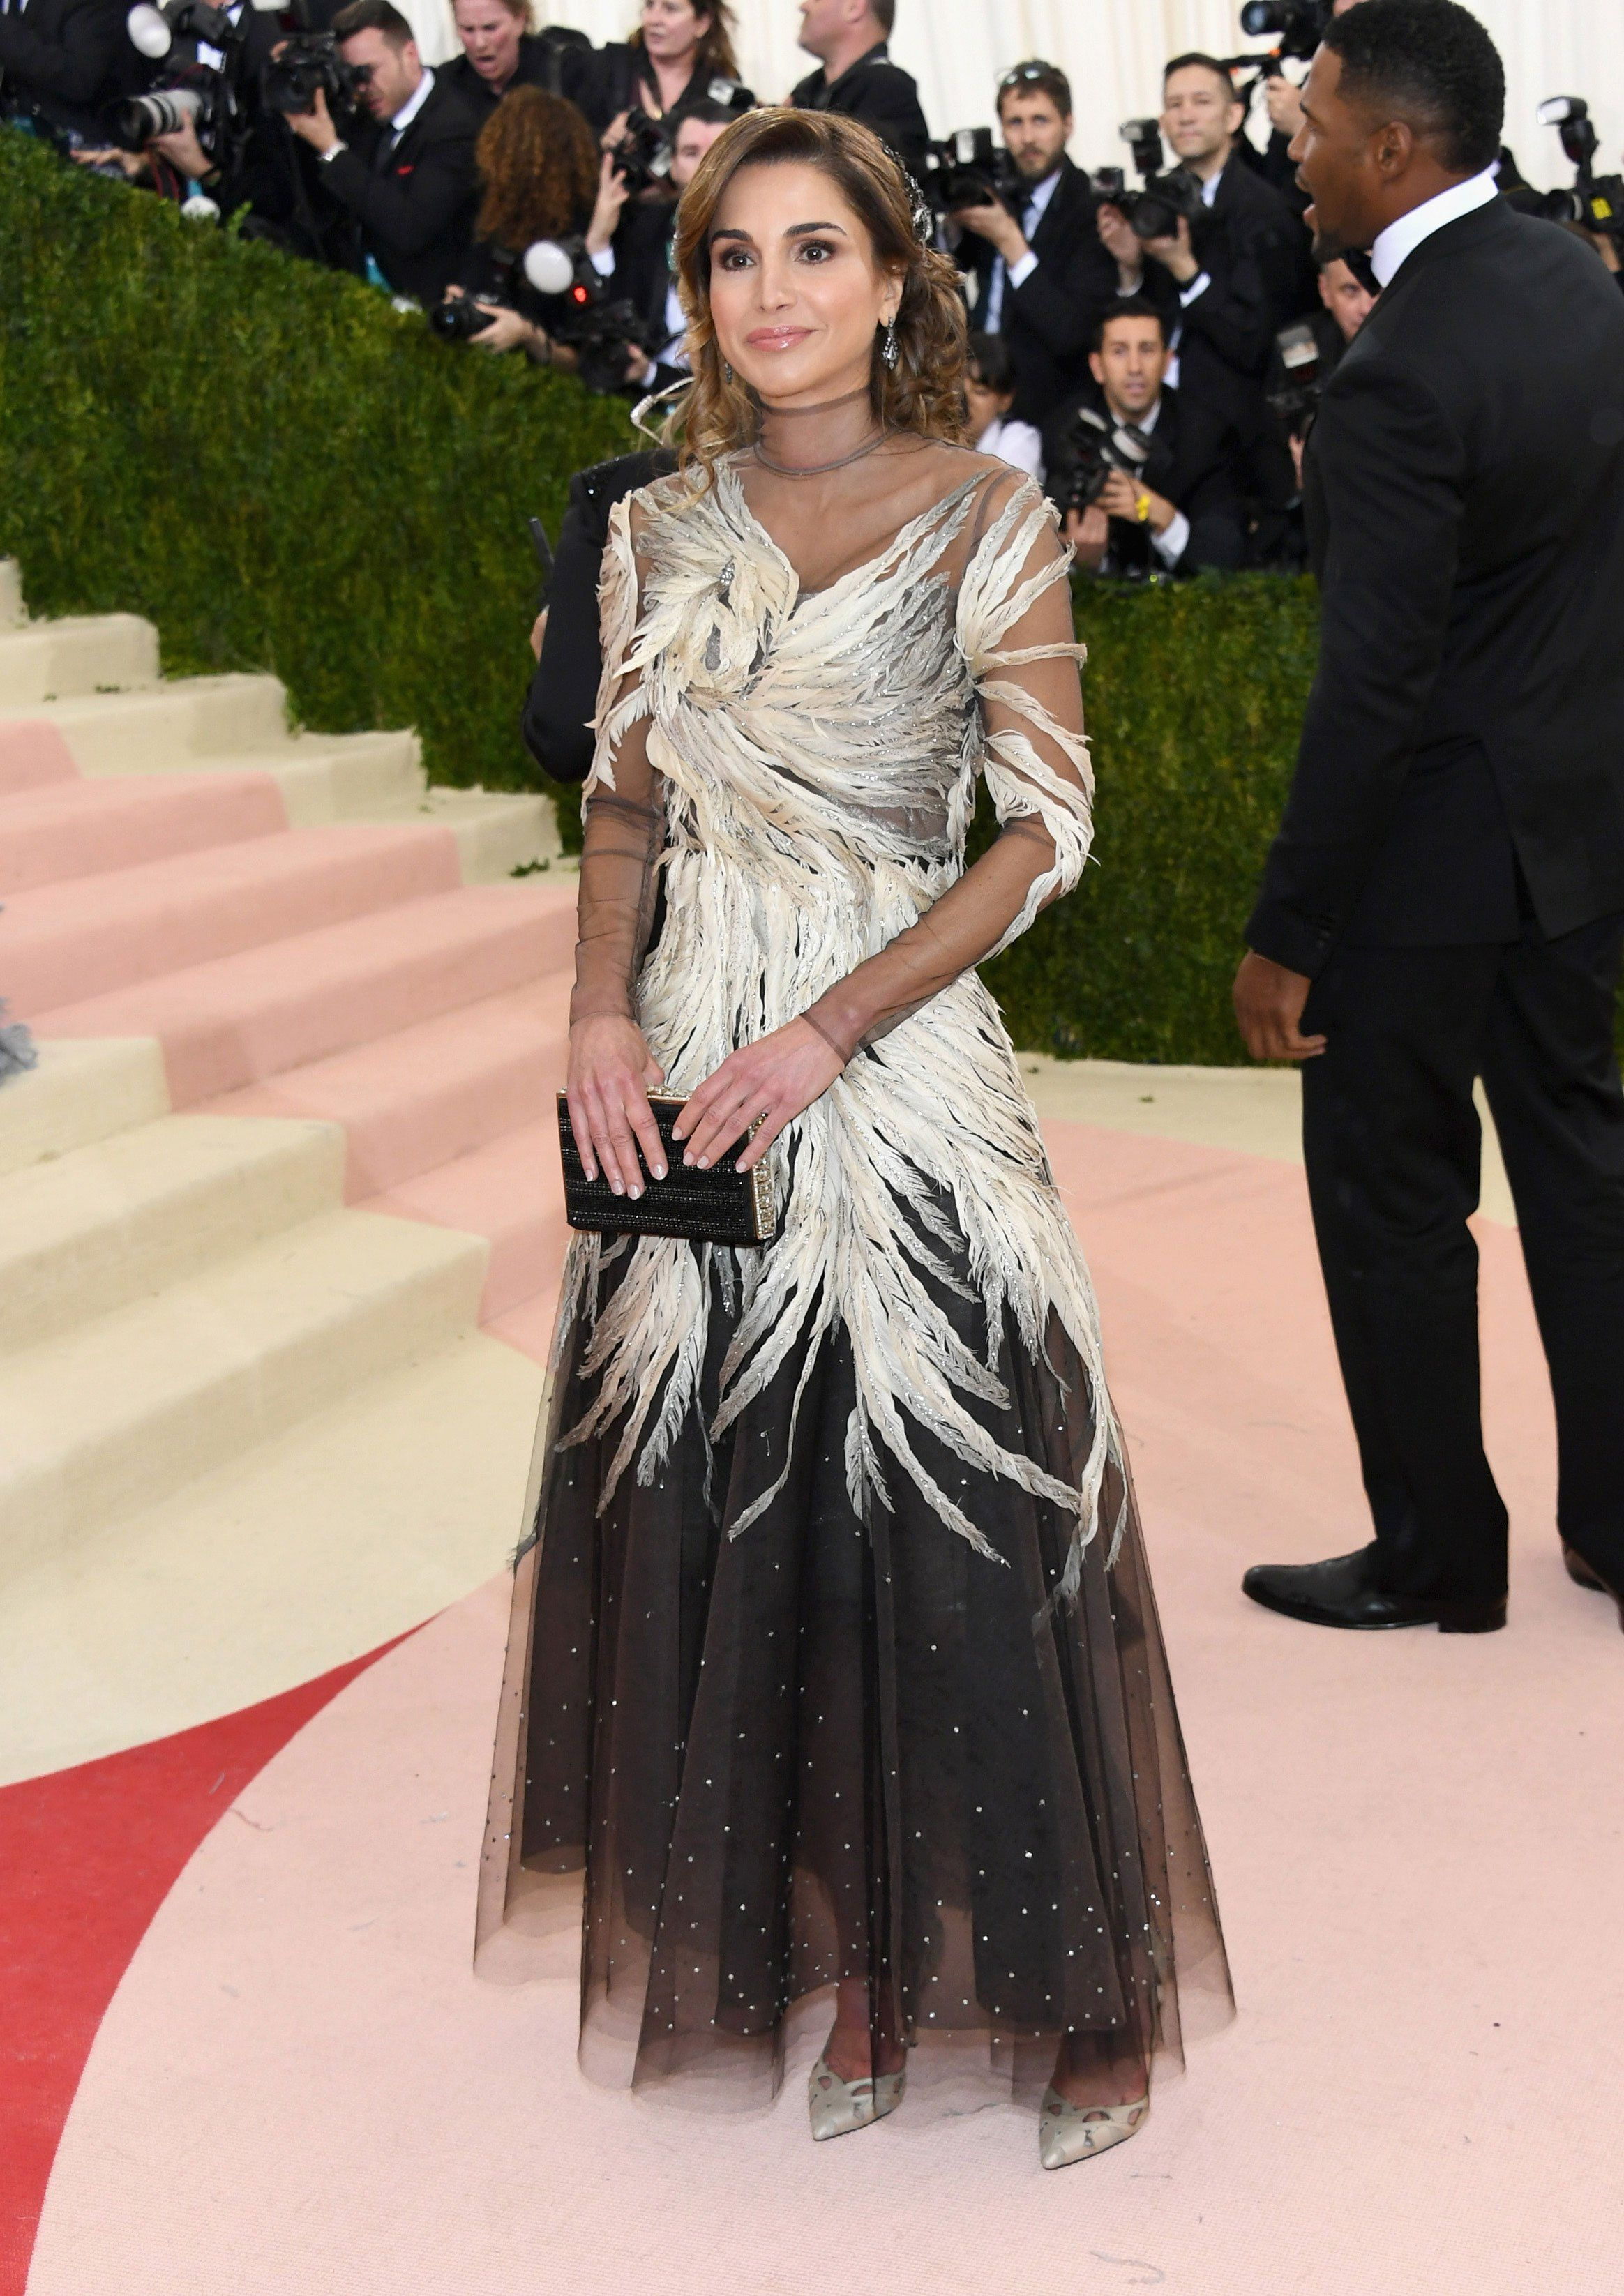 Queen Rania of Jordan in a Valentino dress and Fred Leighton jewelry